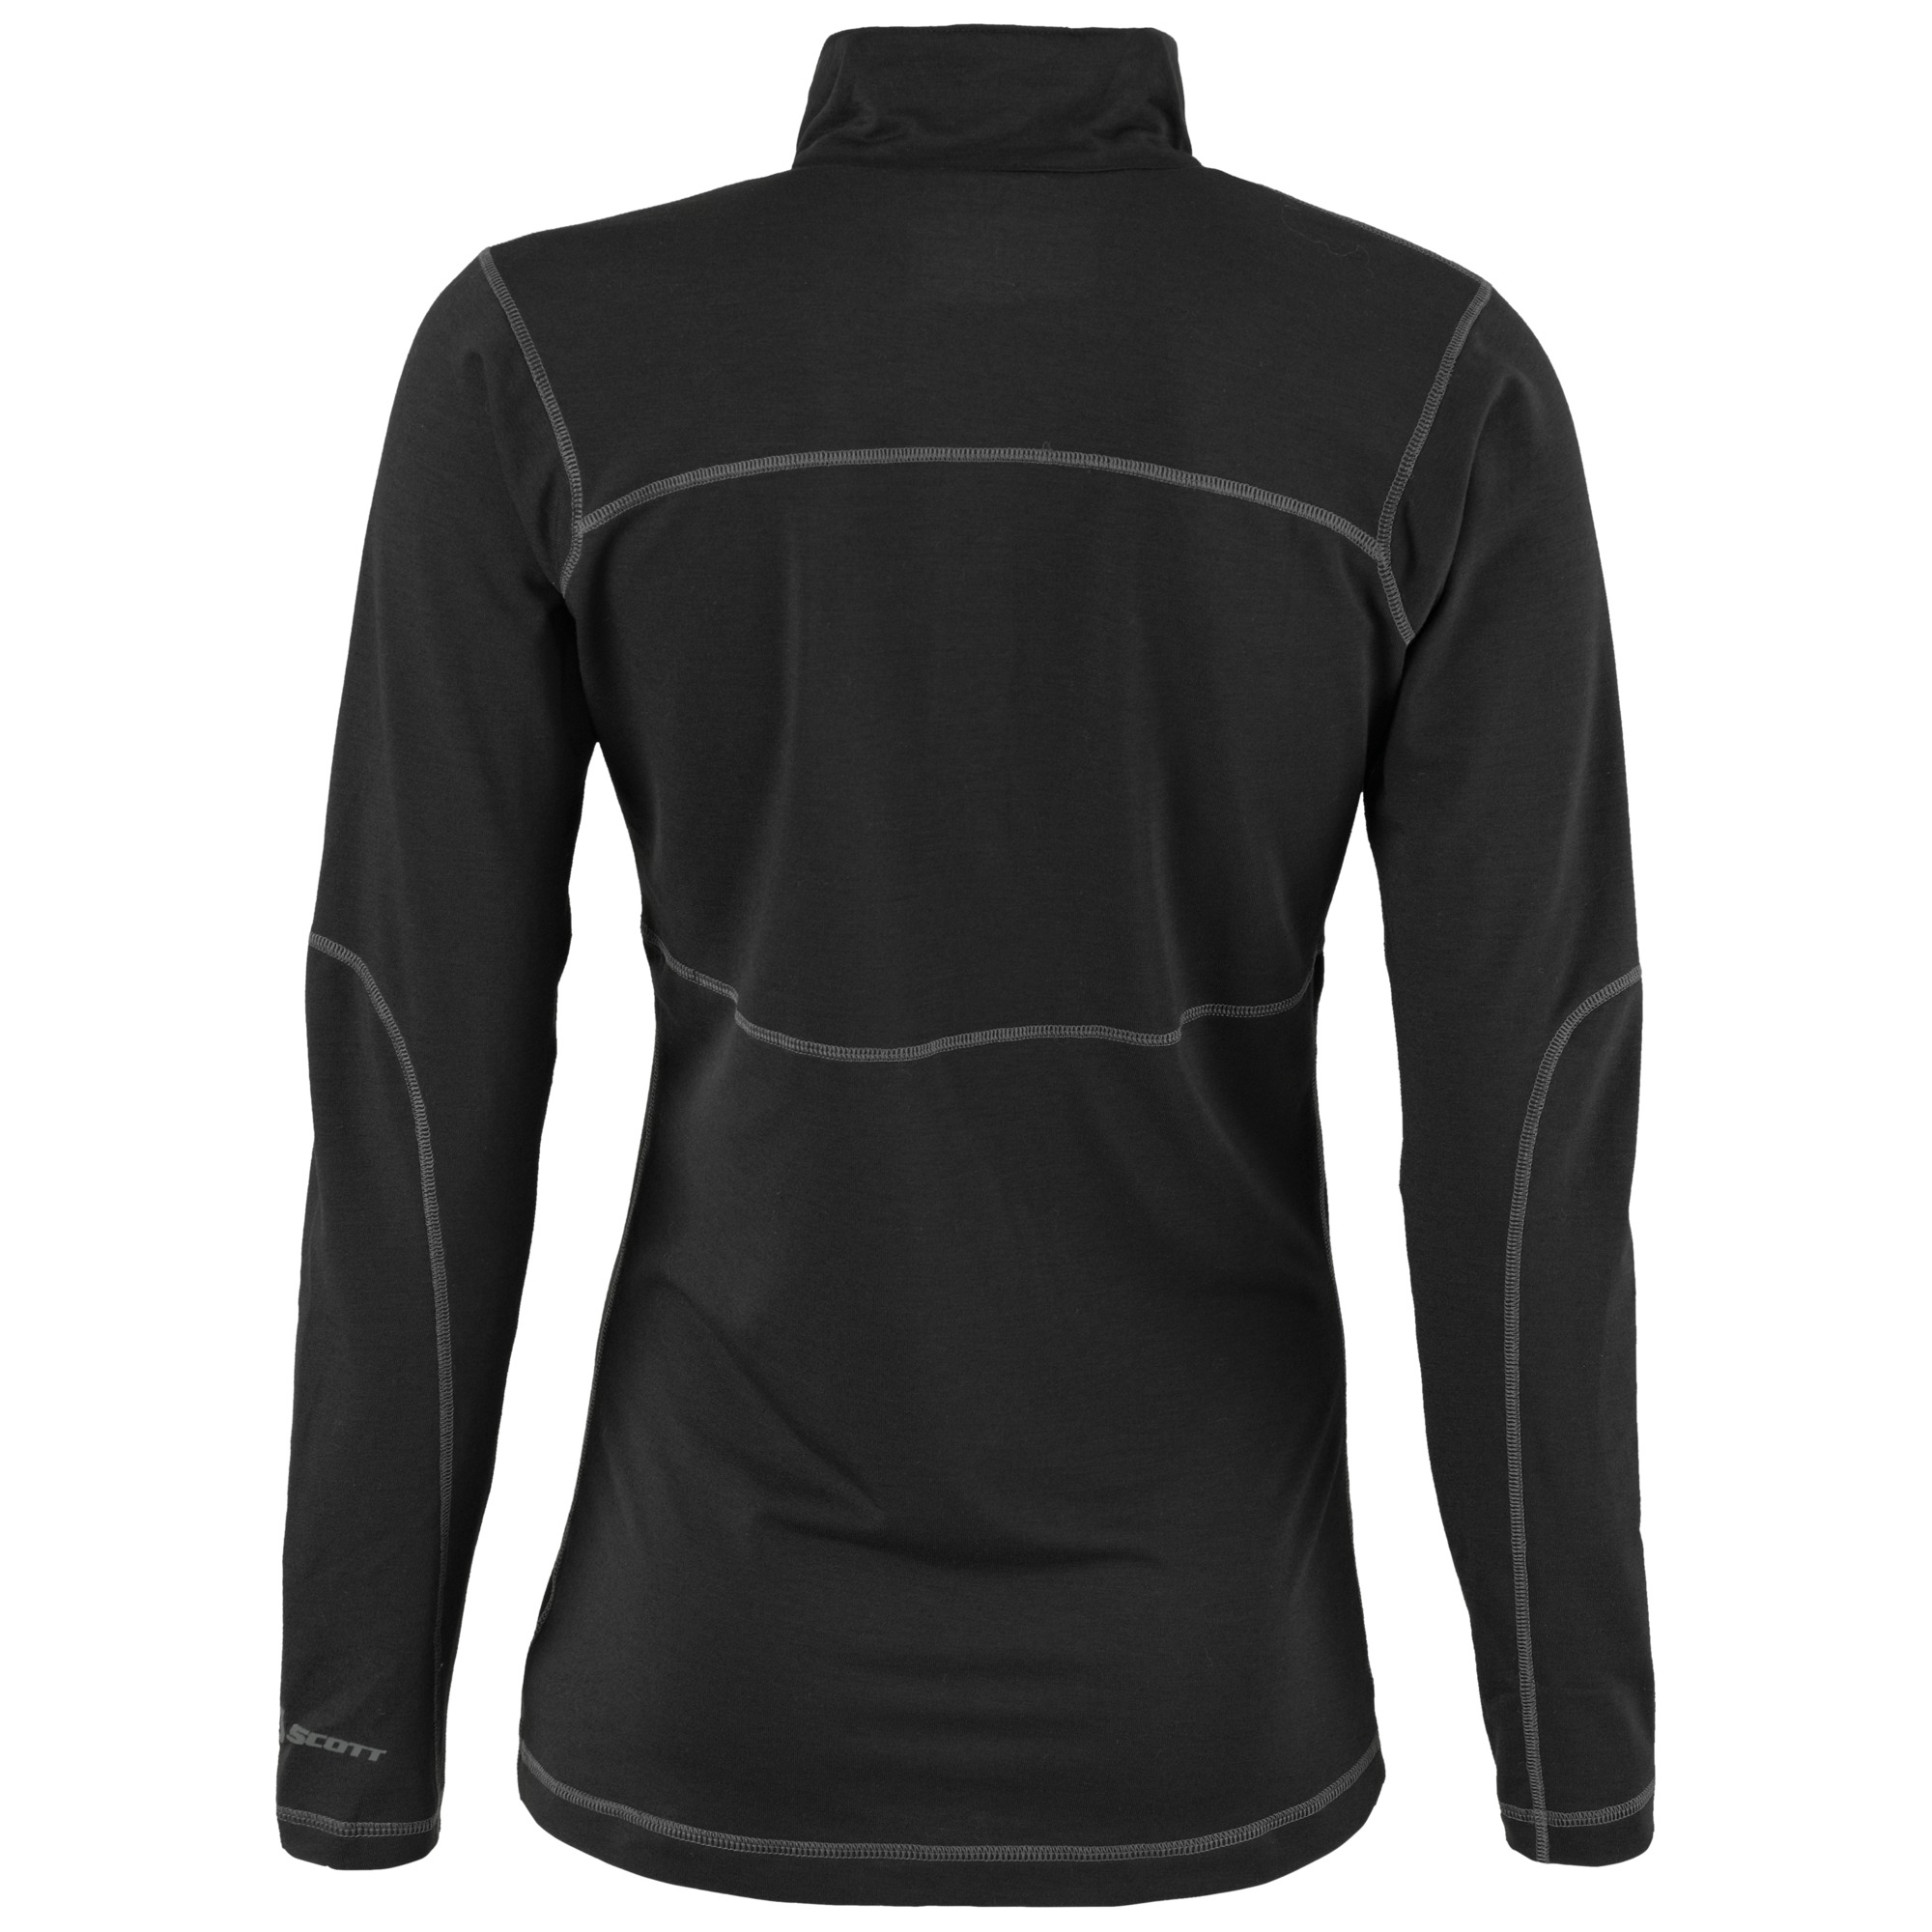 SCOTT Base DRI 1/4 Zip Women's Shirt